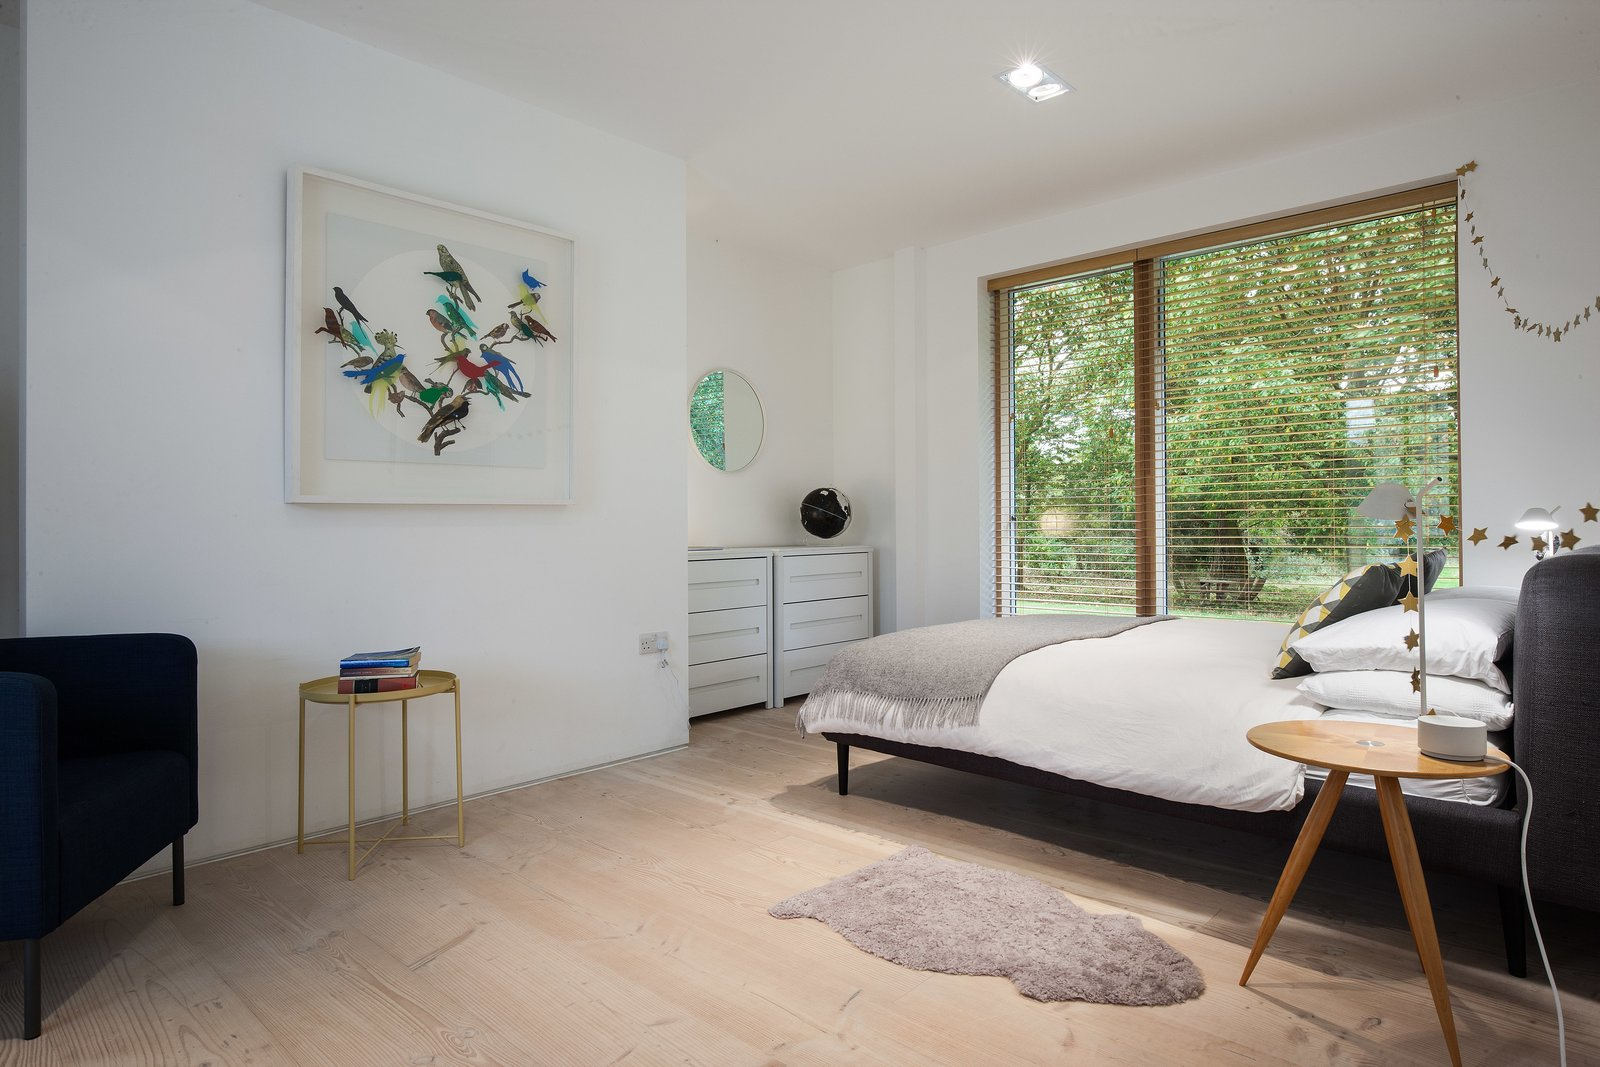 Bedroom, Bed, Chair, Light Hardwood Floor, Night Stands, Dresser, and Recessed Lighting  Photo 8 of 11 in A Scandinavian-Style Pavilion in England Is Listed For $2.1M